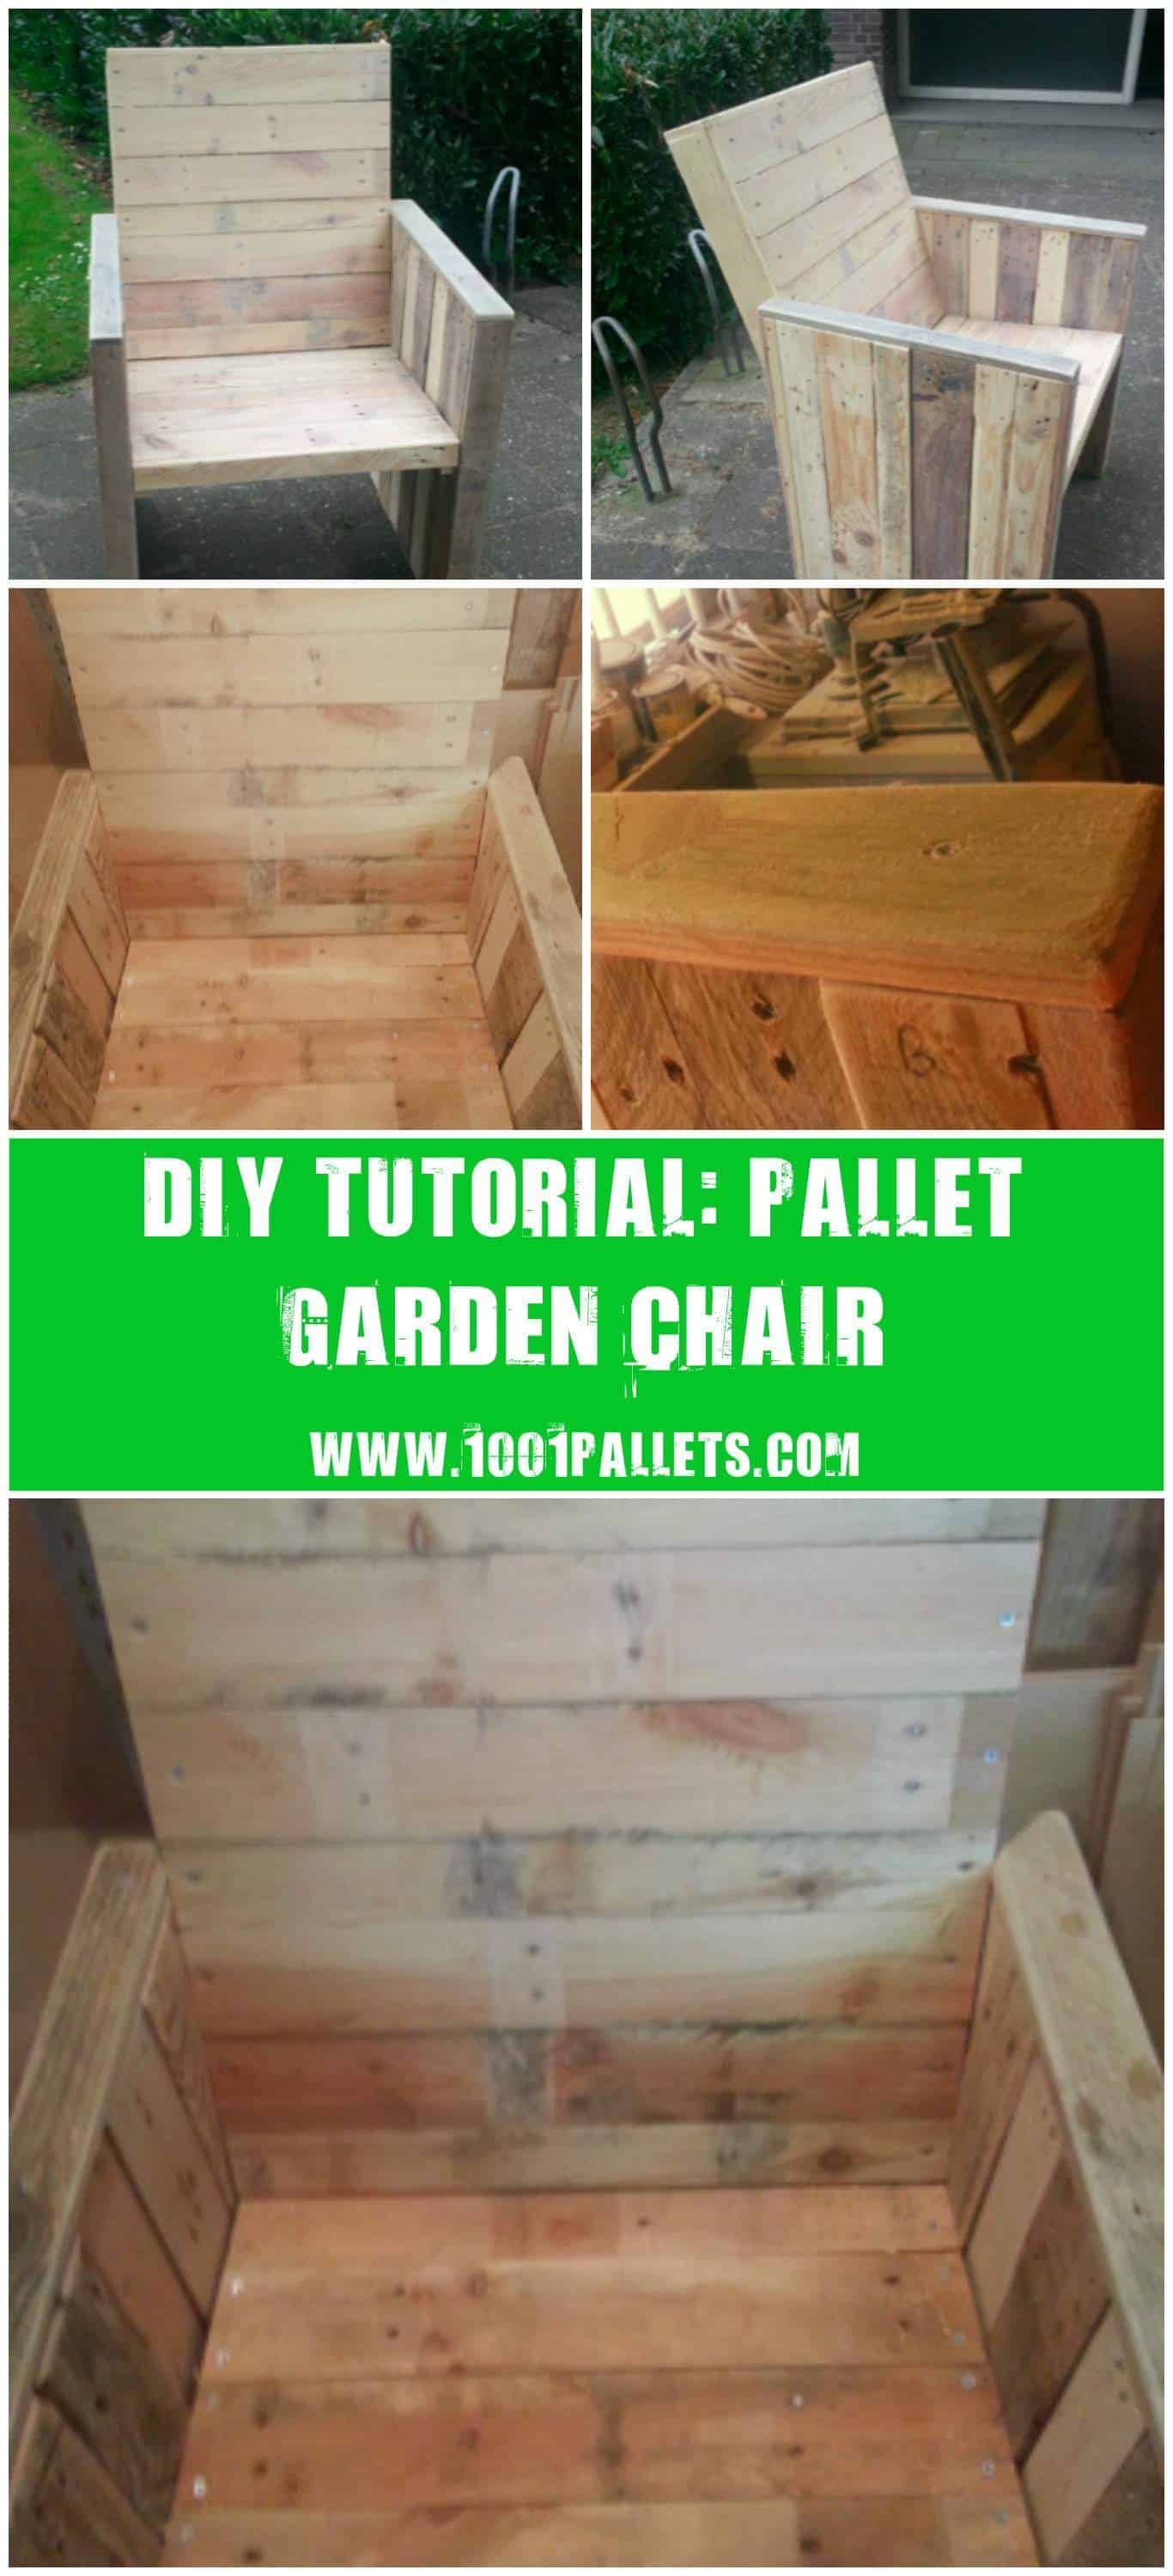 Working with pallets 5 essential woodworking power tools that won - Diy Step By Step Tutorial Pallet Garden Chair